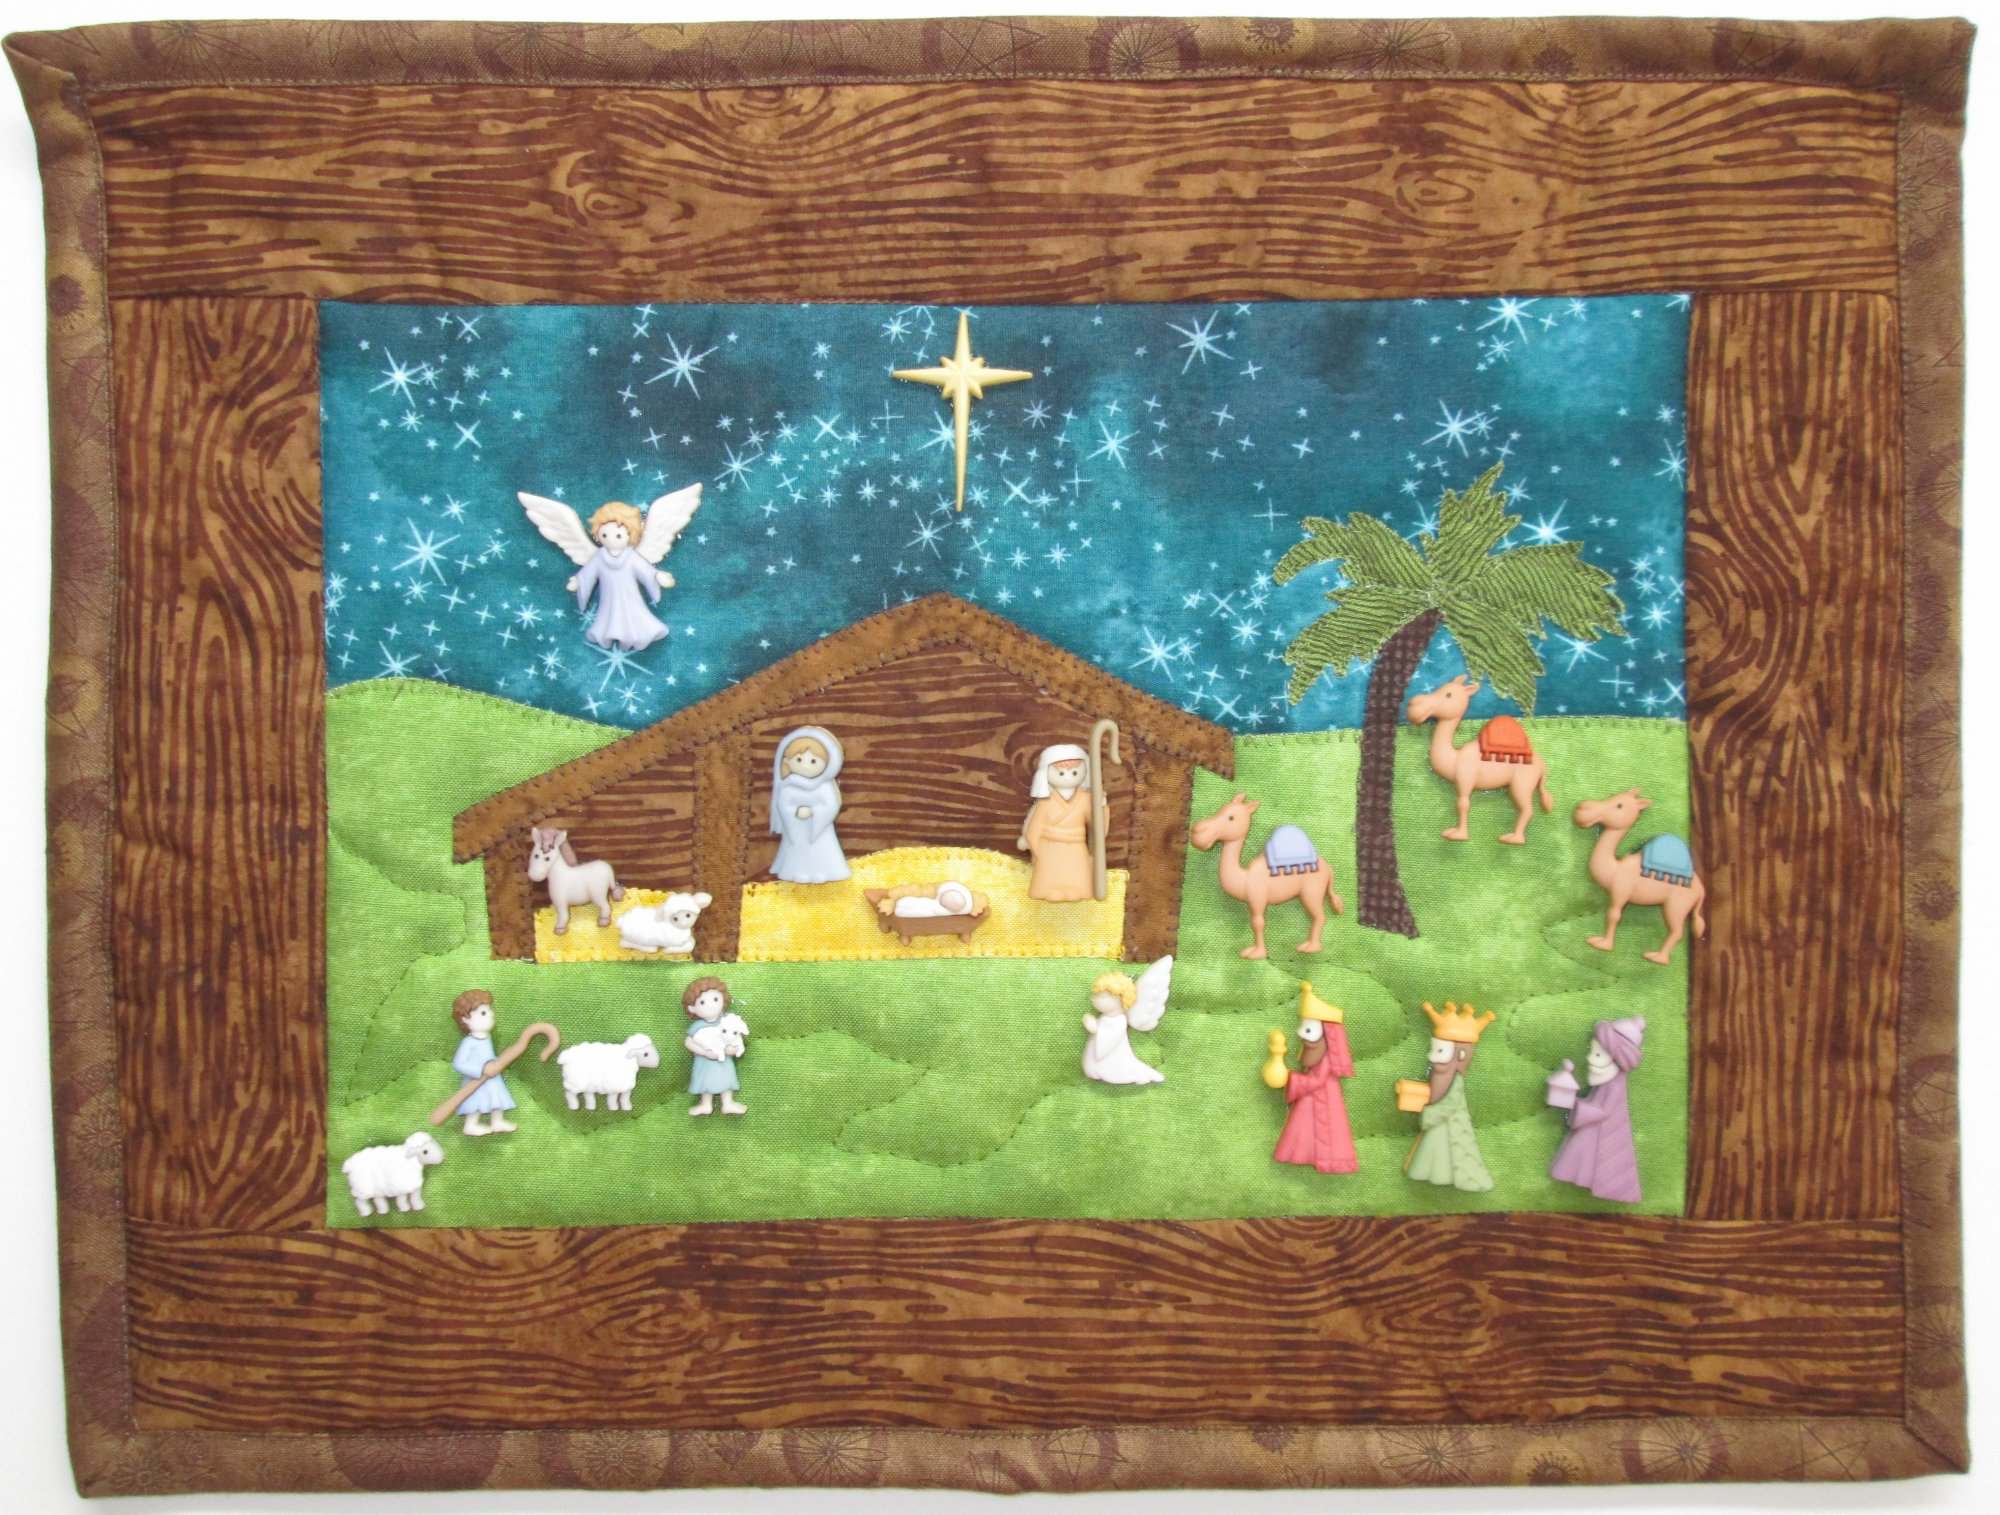 He Is Born! Nativity Wall Hanging Kit 10.5 x 14 includes binding buttons & pattern